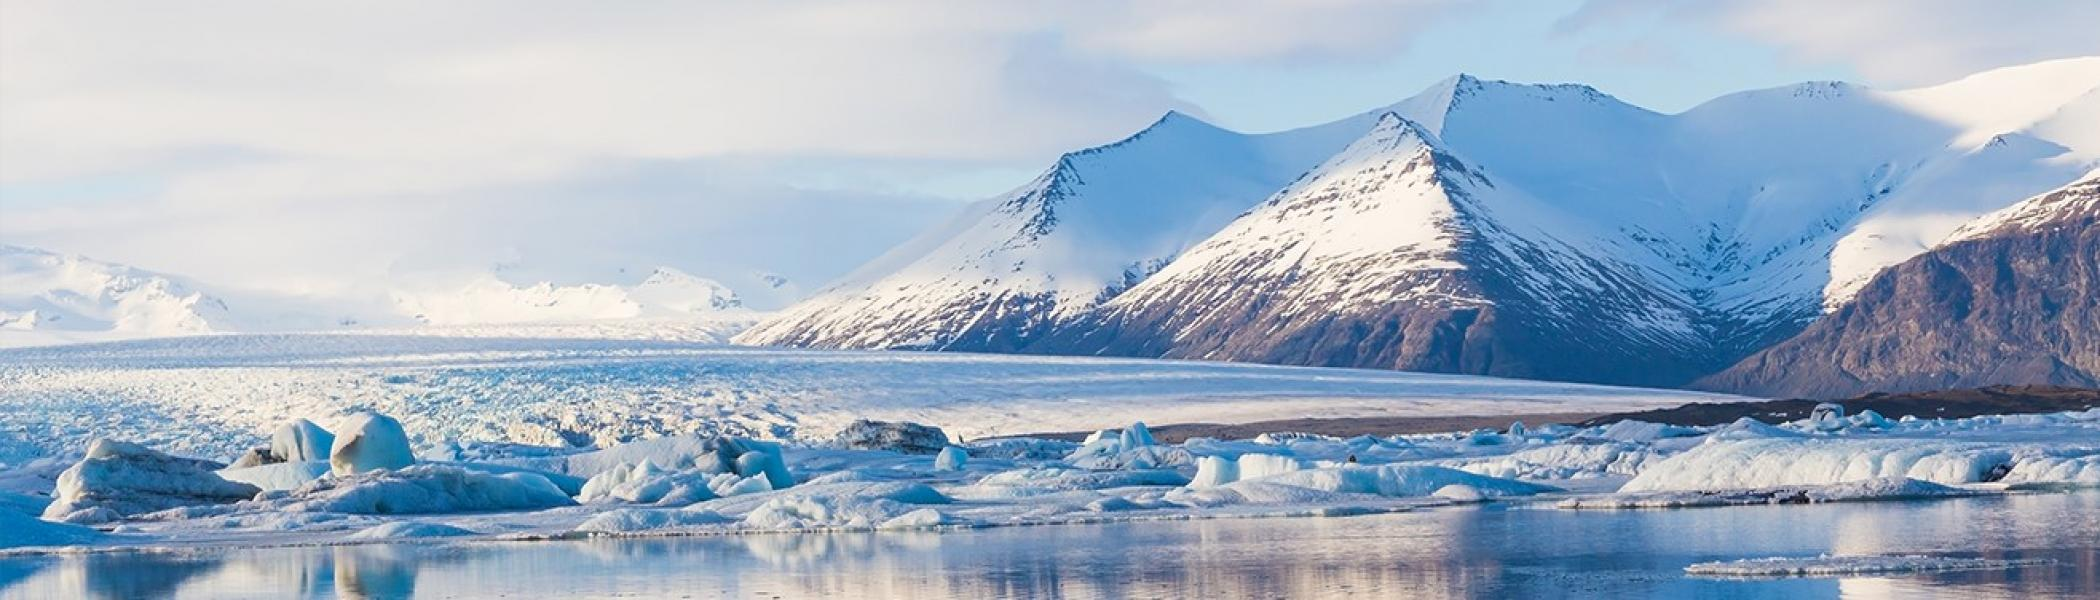 Arctic landscape with mountains and glaciers